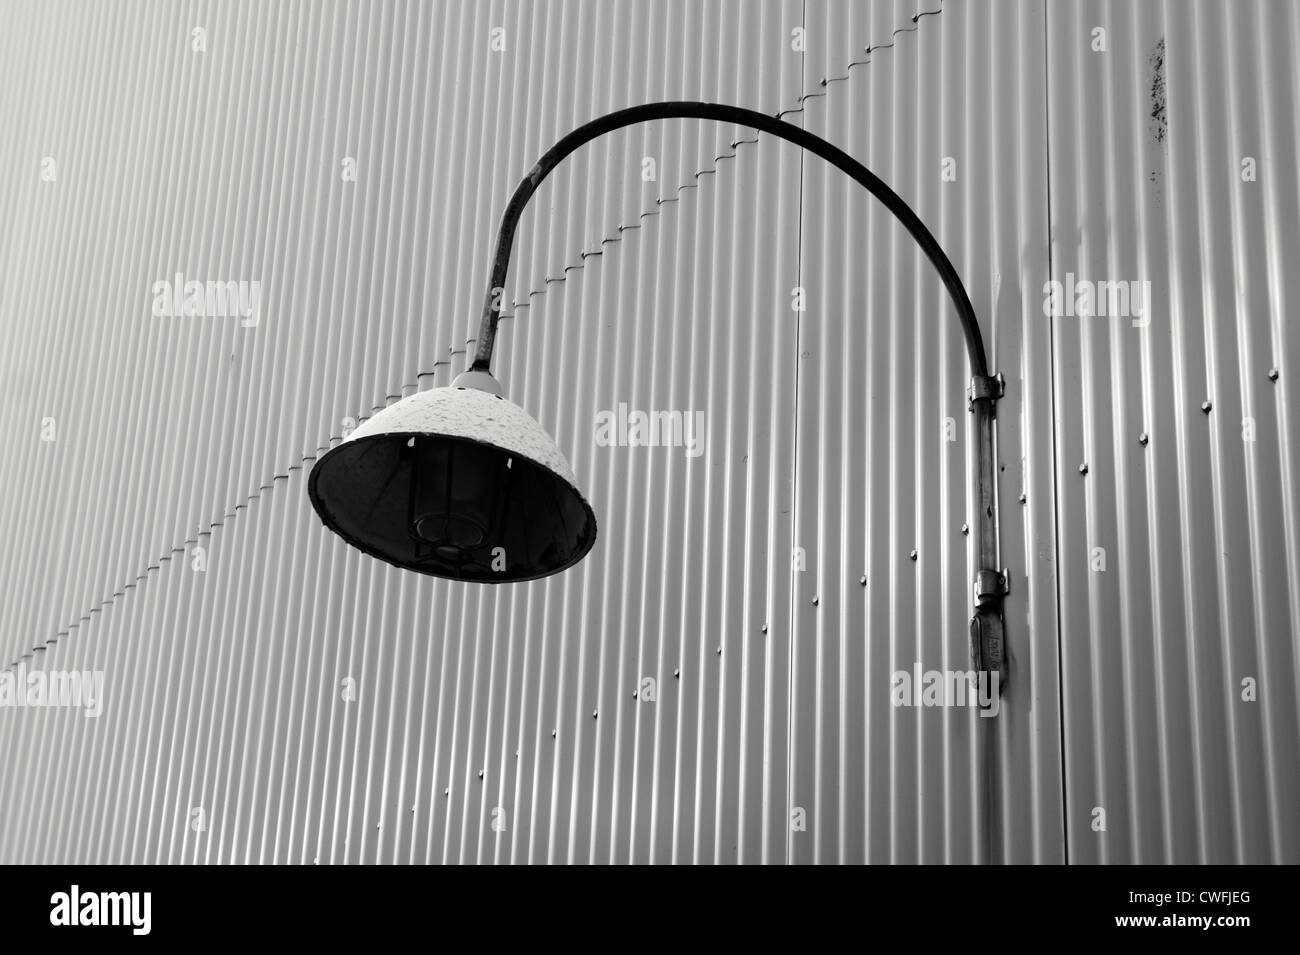 Electric light fixture on wall of a corrugated metal building, Granville Island, Vancouver, British Columbia, Canada - Stock Image